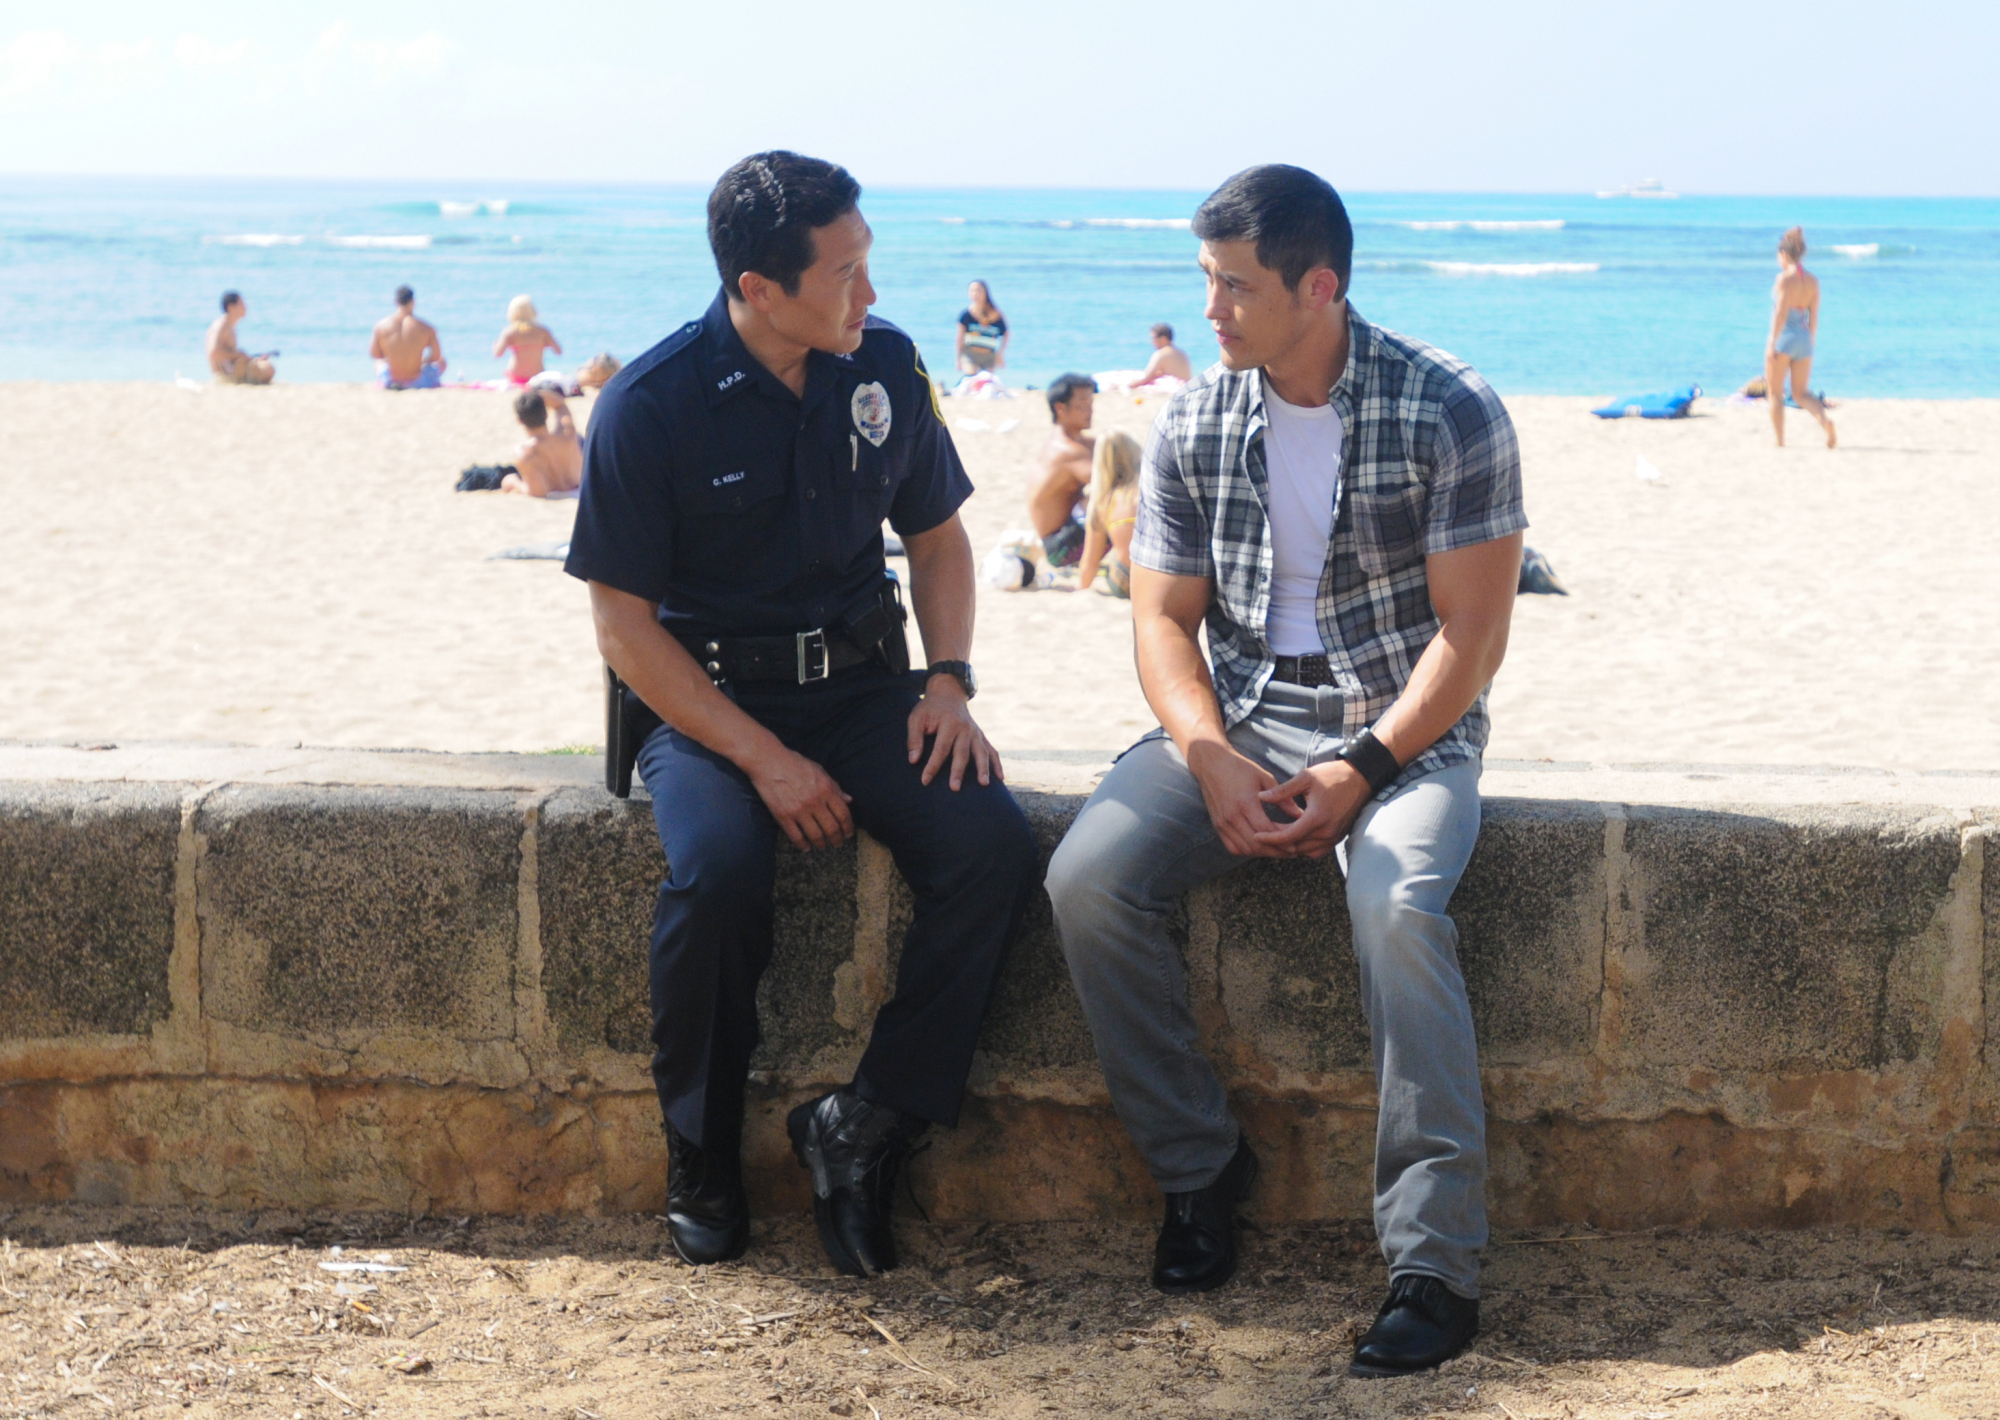 Beach Boardwalk in Season 4 Episode 13